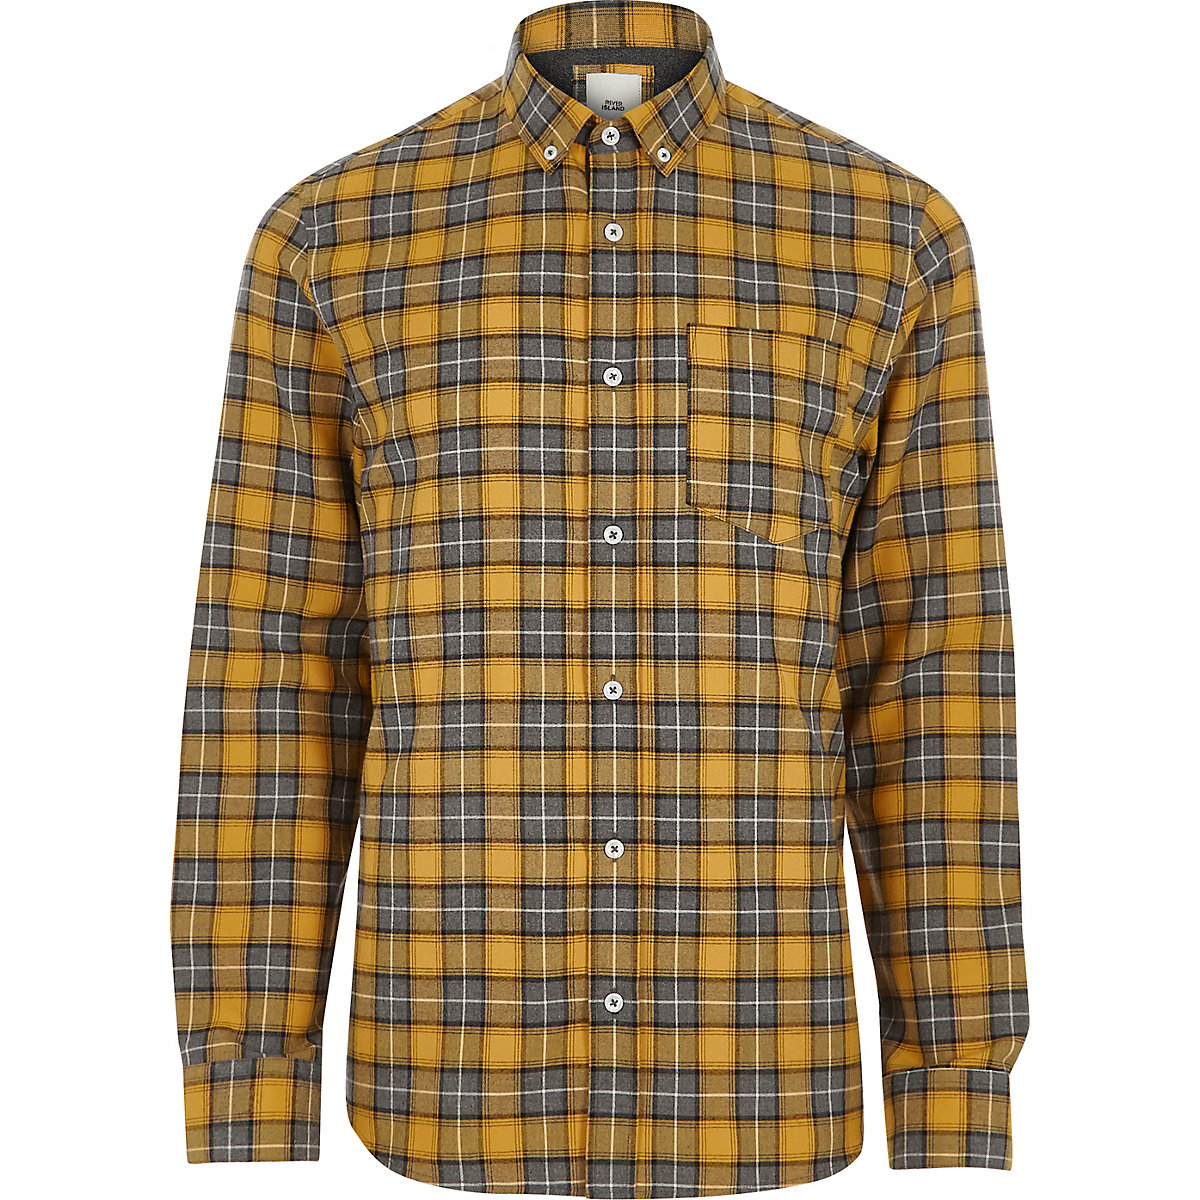 Yellow check long sleeve button-down shirt